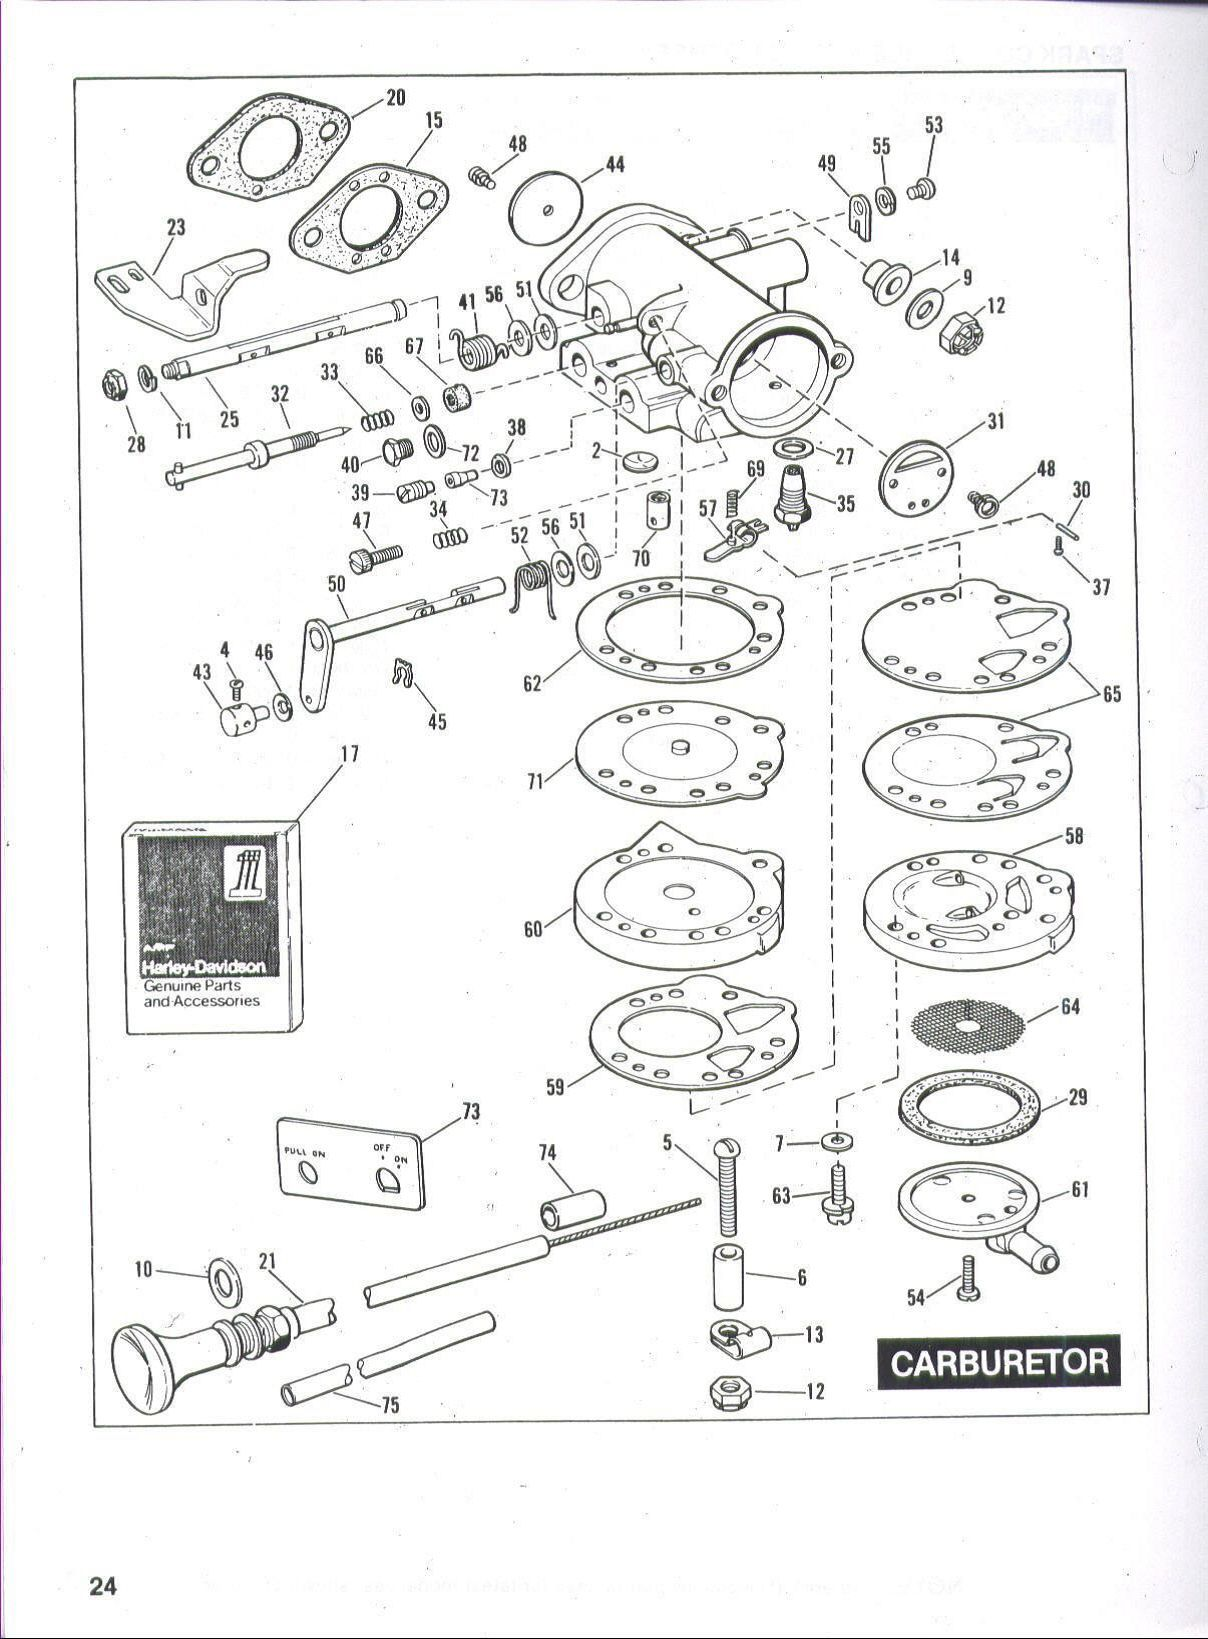 hight resolution of harley davidson golf cart carburetor diagram utv stuff golf ez go gas engine carborator diagram